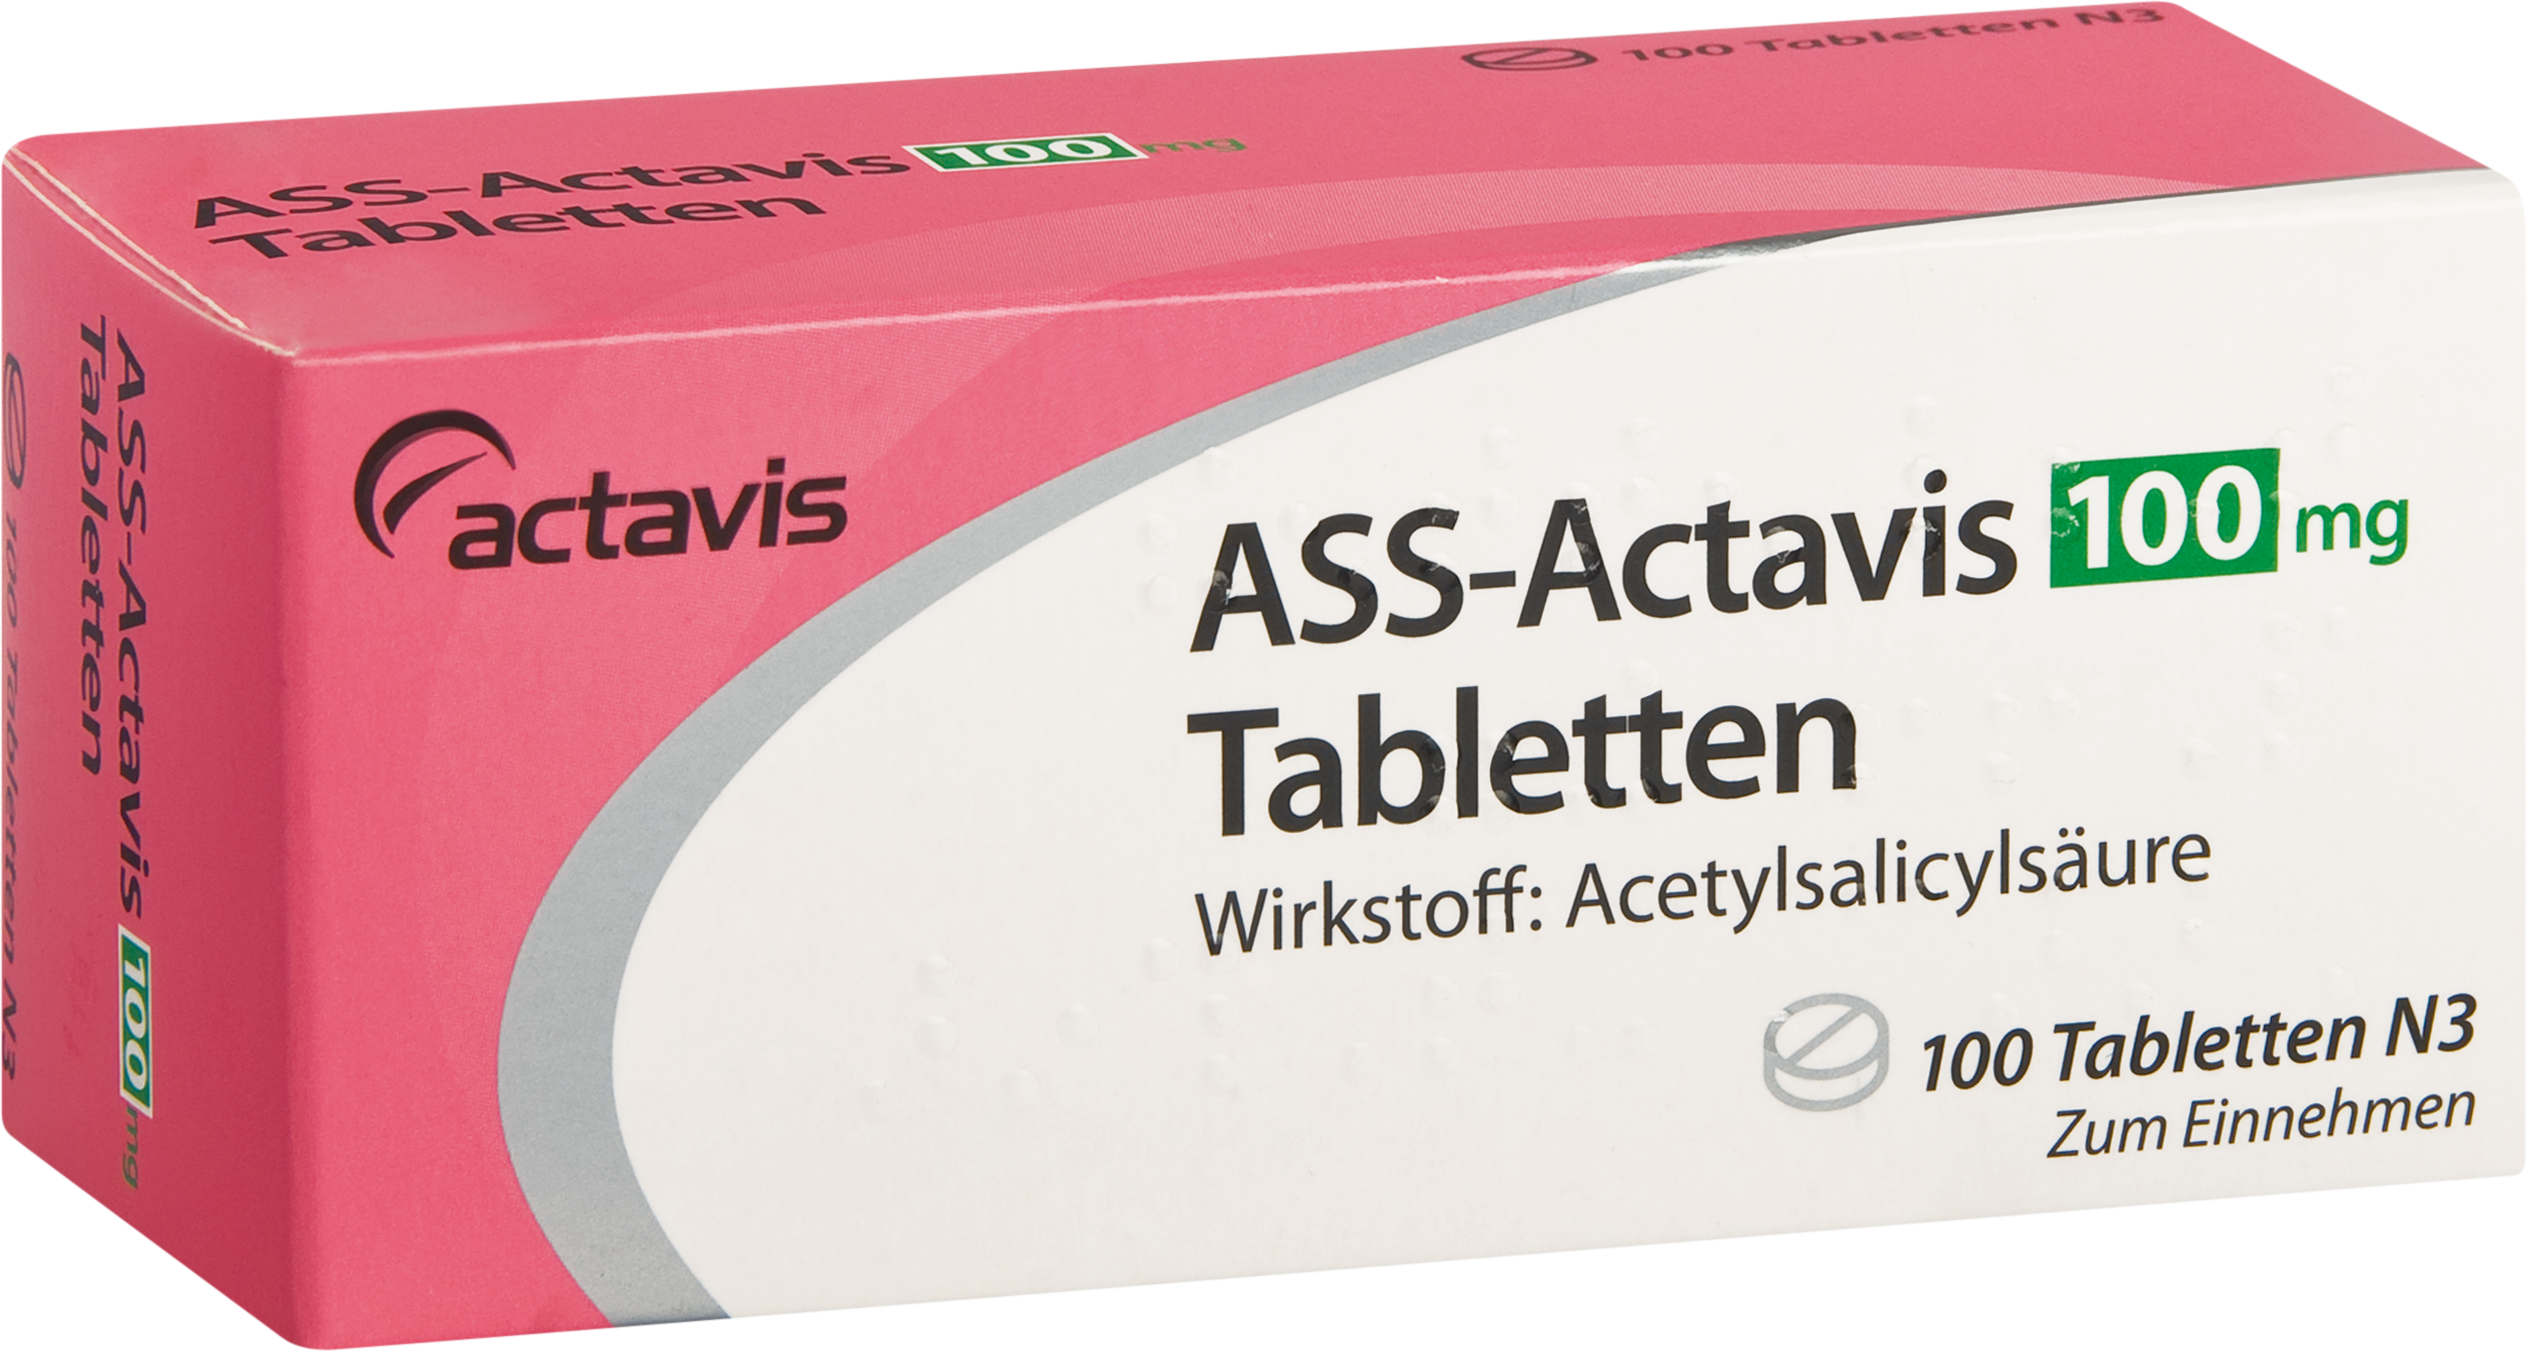 ASS-Actavis 100mg Tabletten